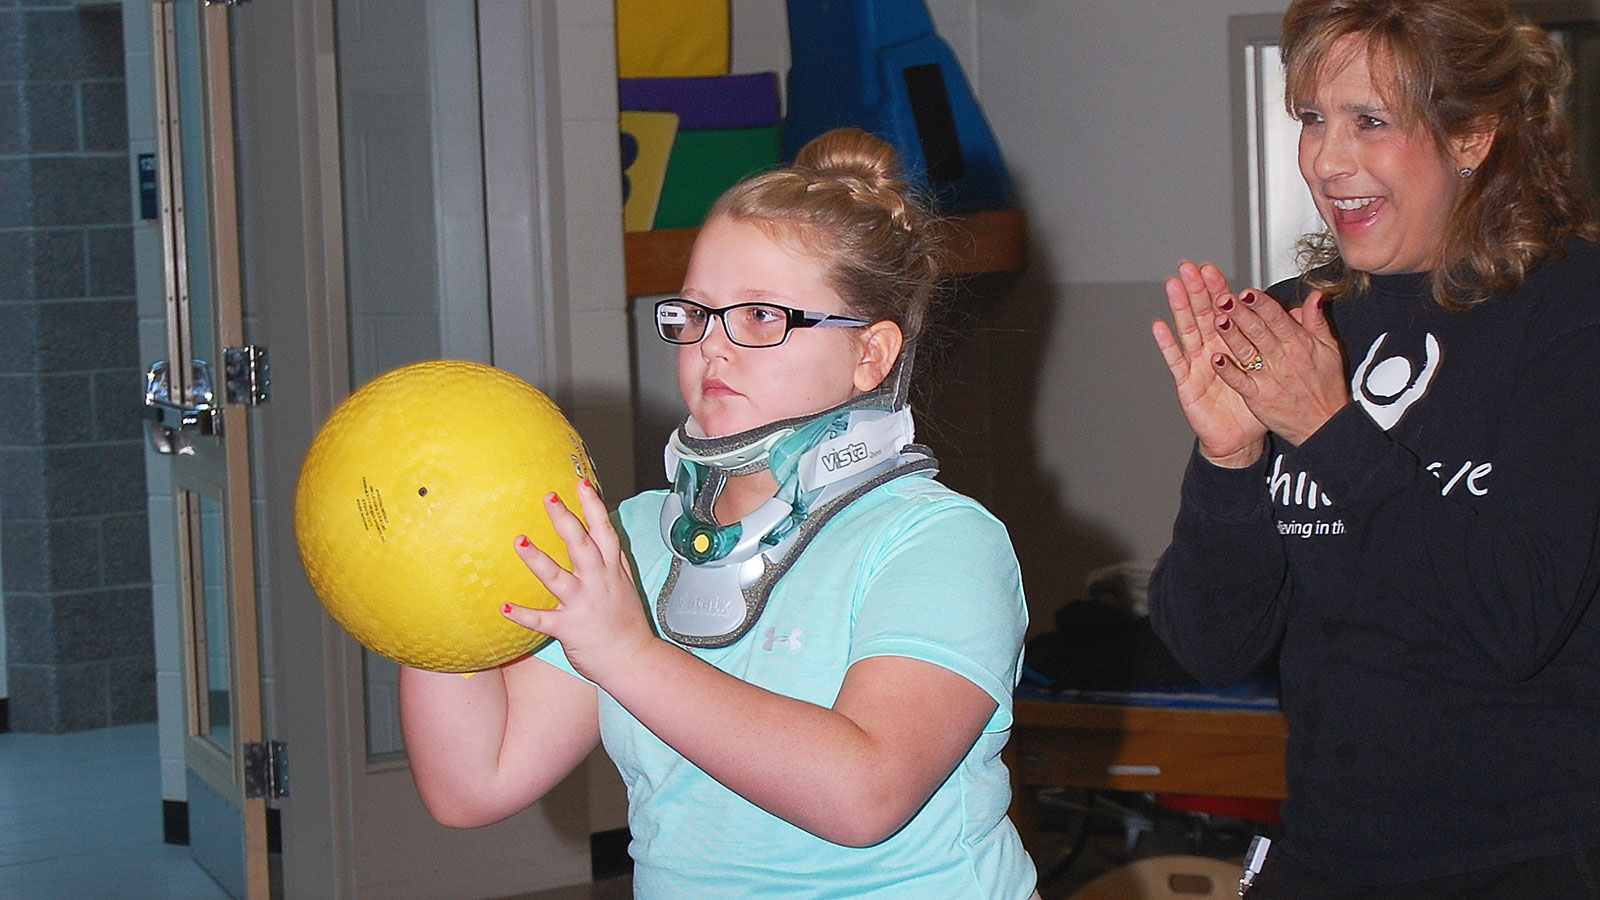 Gracen in Physical Therapy bouncing a yellow ball.